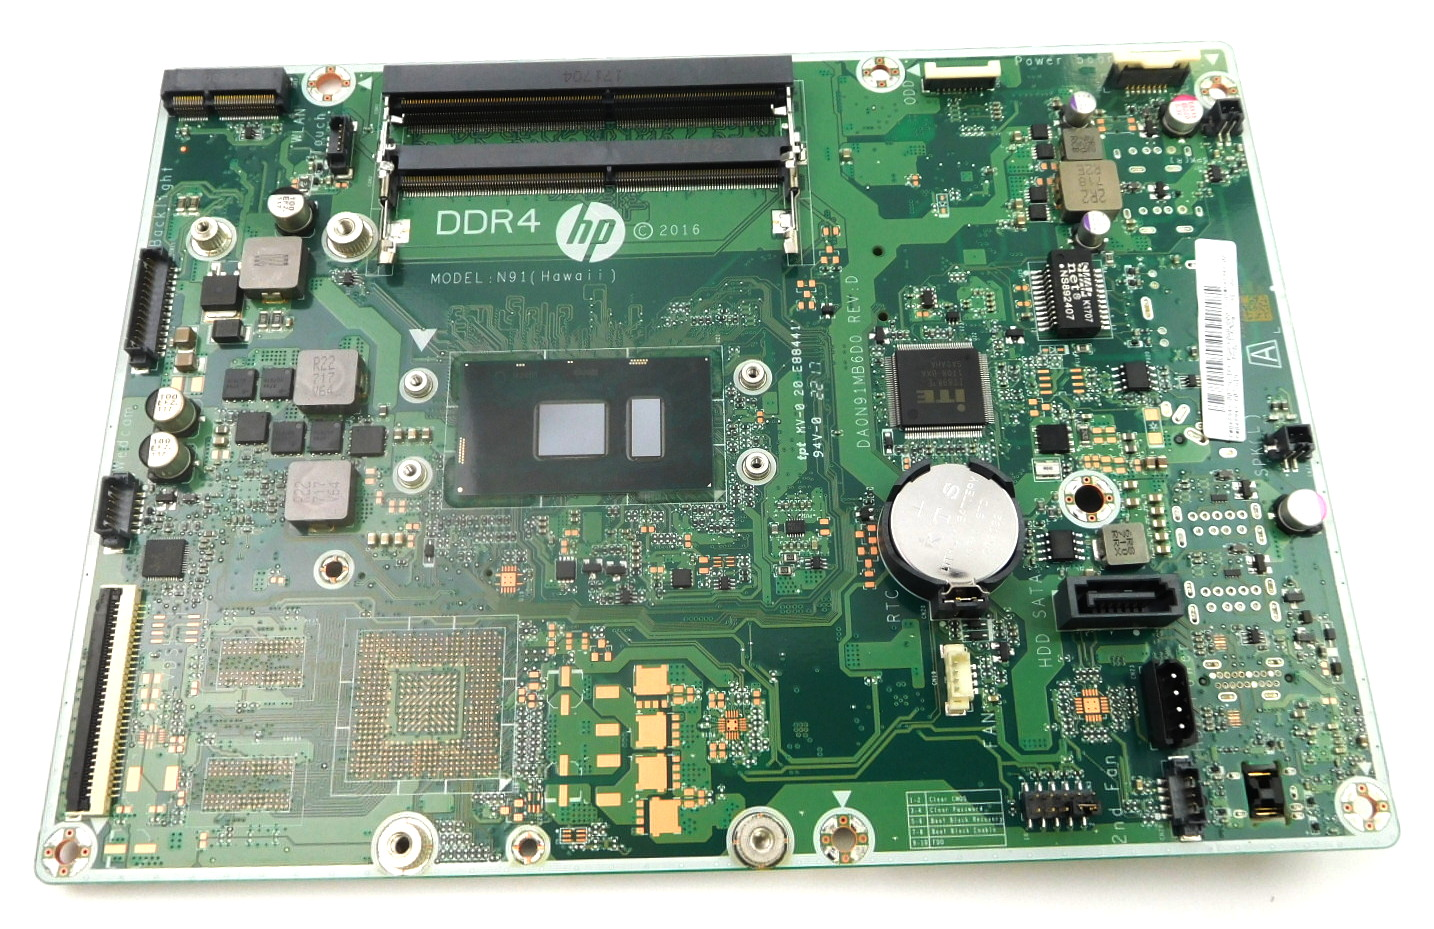 848949-007 HP AIO PC 24-ea030na Motherboard w/ BGA Core i3-7100U CPU /N91 Hawaii